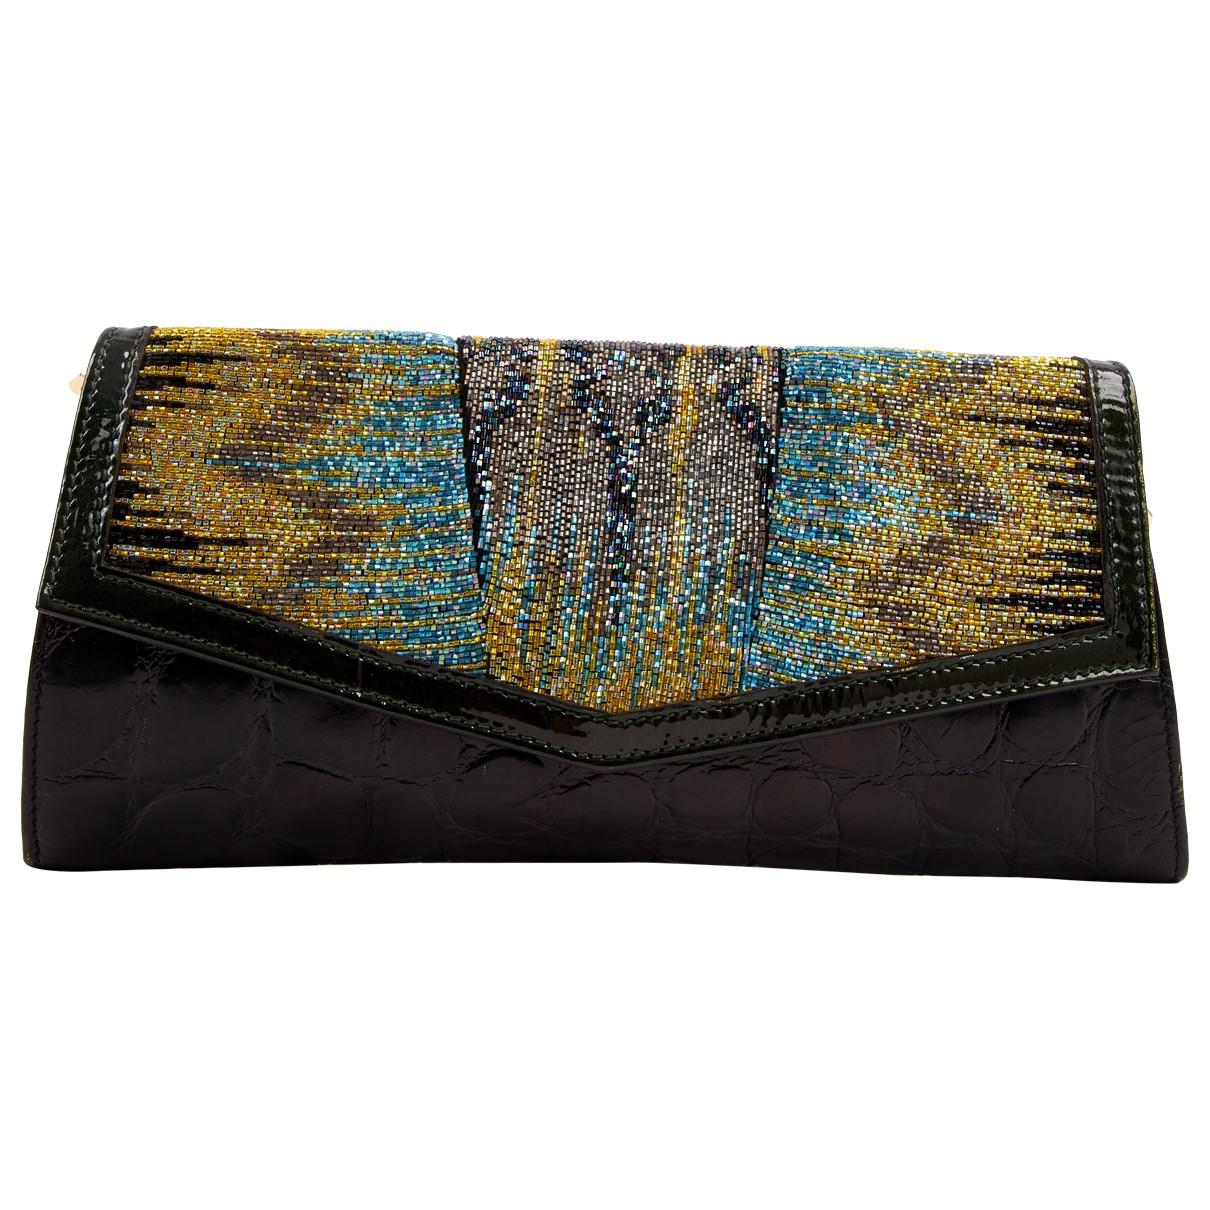 Etro Pre-owned - Clutch bag Pp2RTb